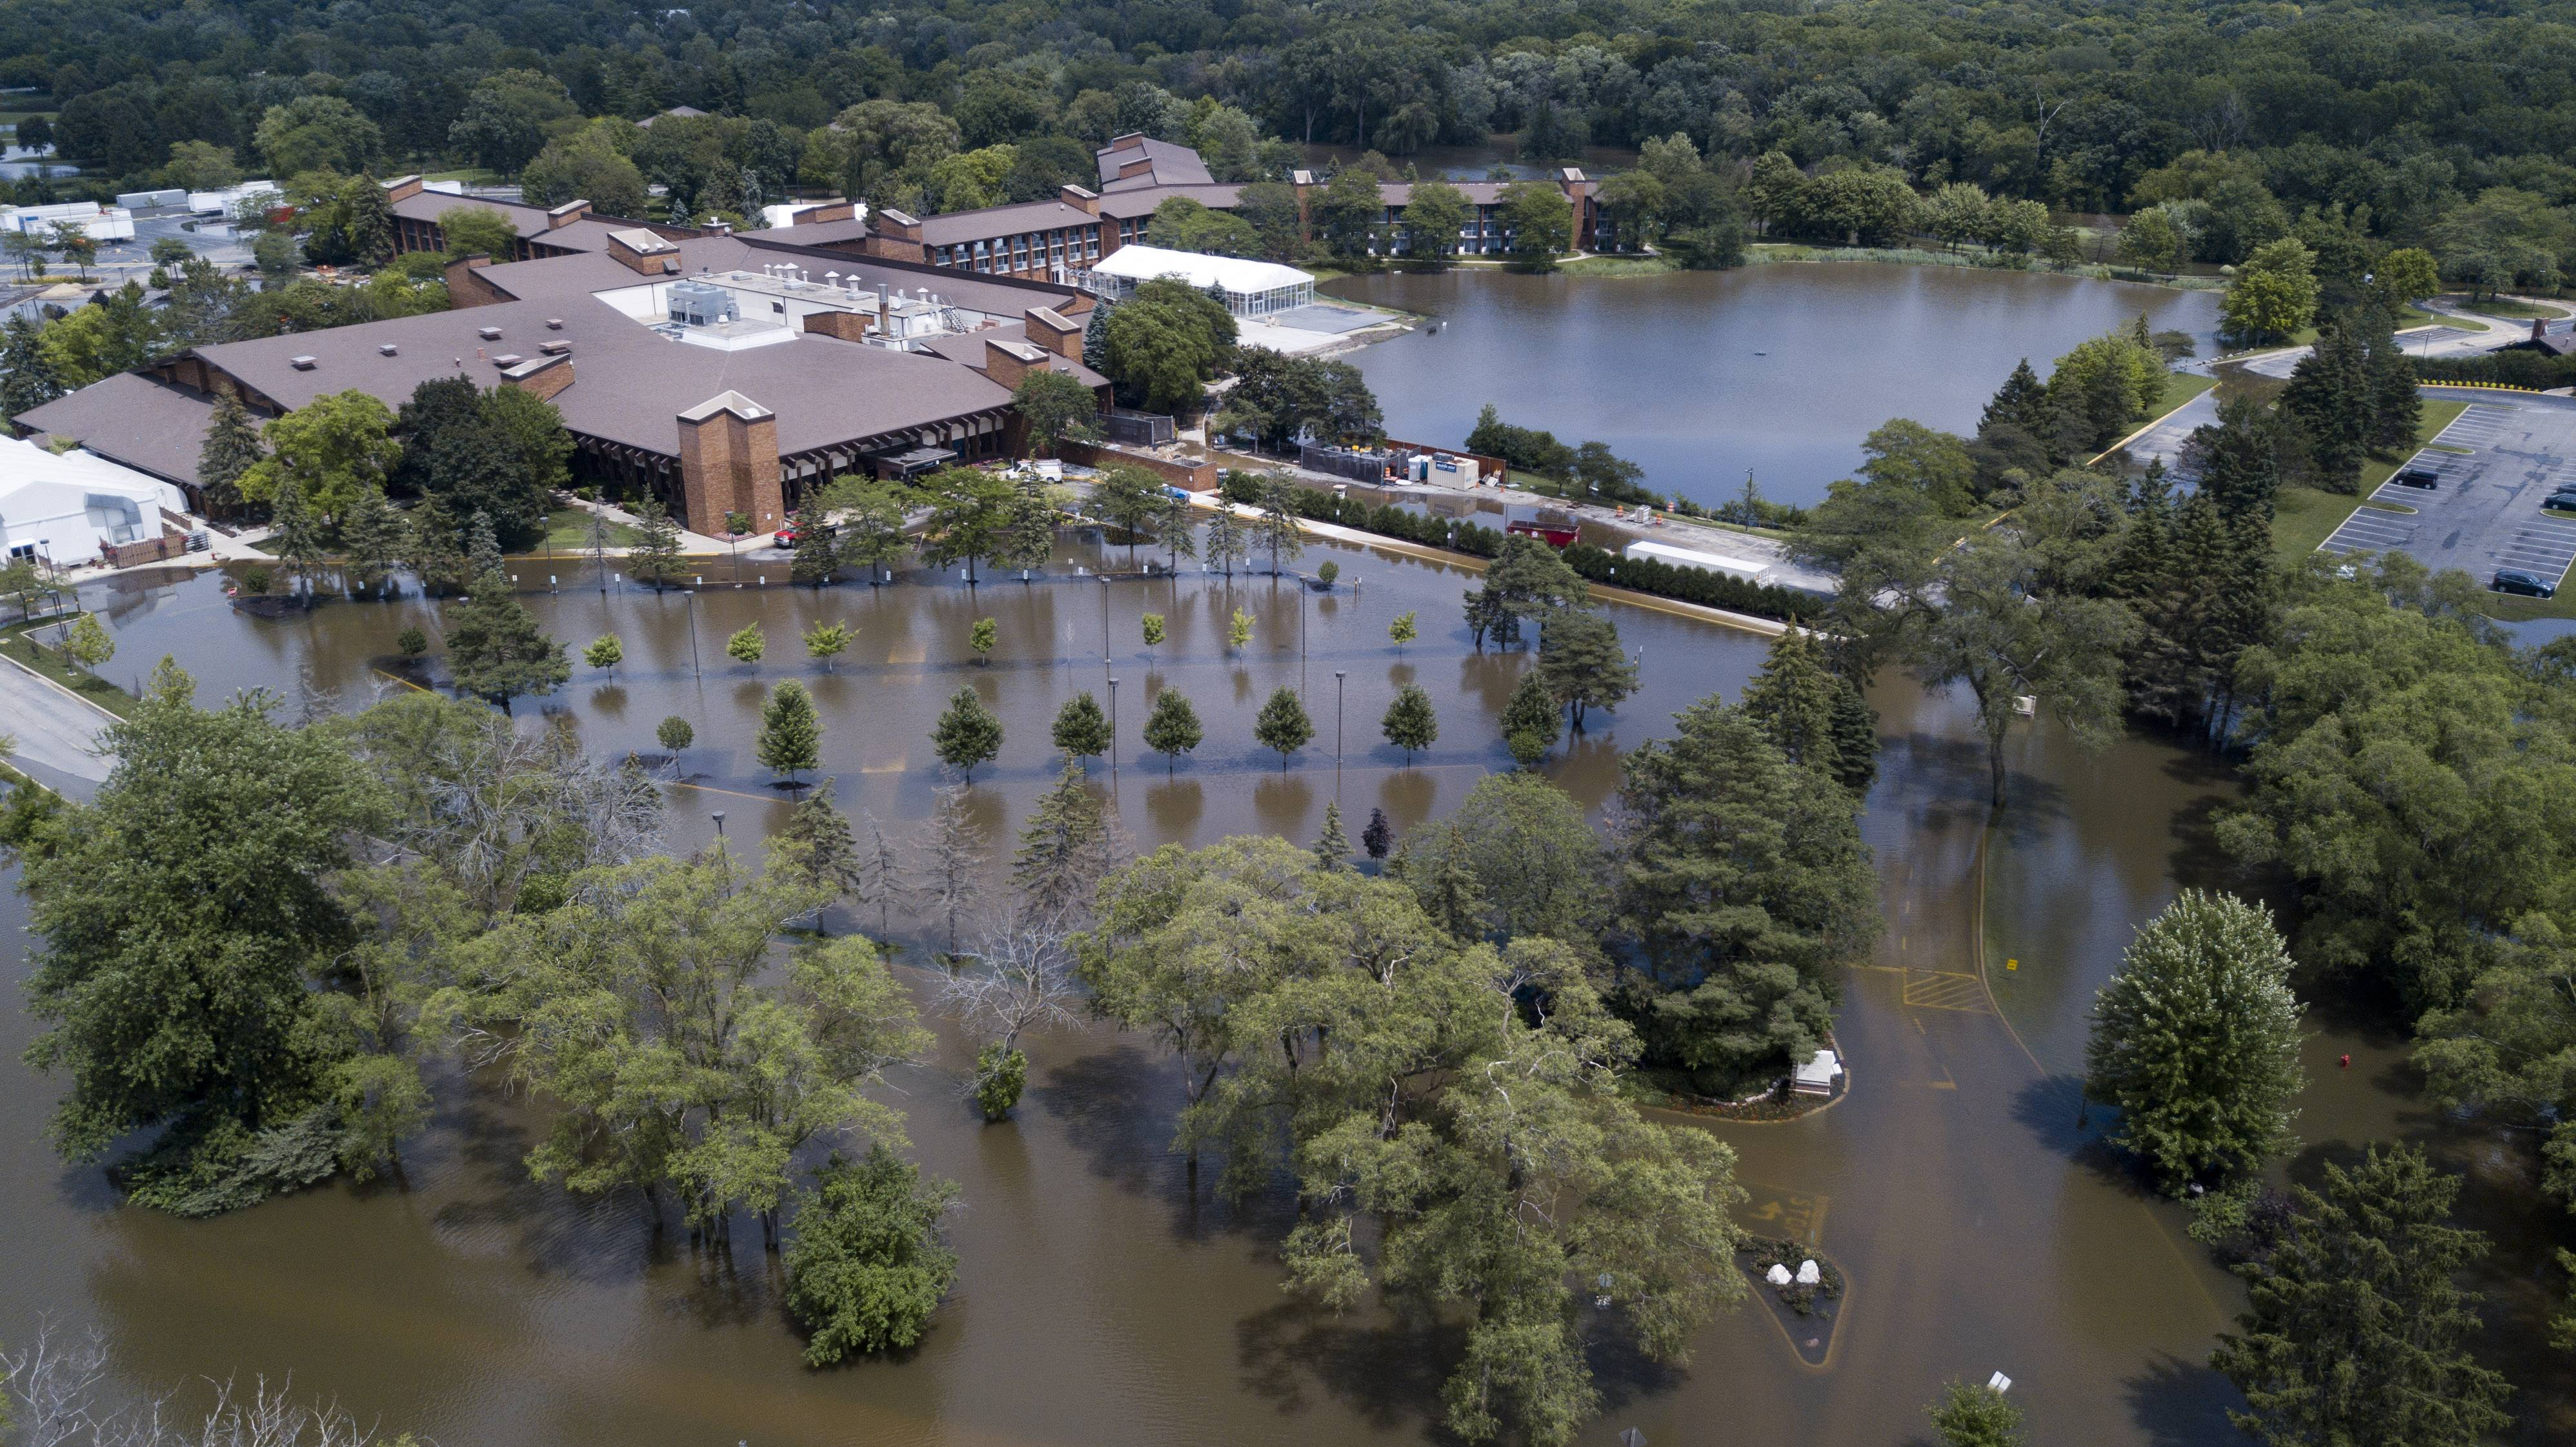 A drone aerial view showed the extent of flooding at the Marriott Lincolnshire last week. The resort reopened Tuesday and Marriott Theatre performances resume today.